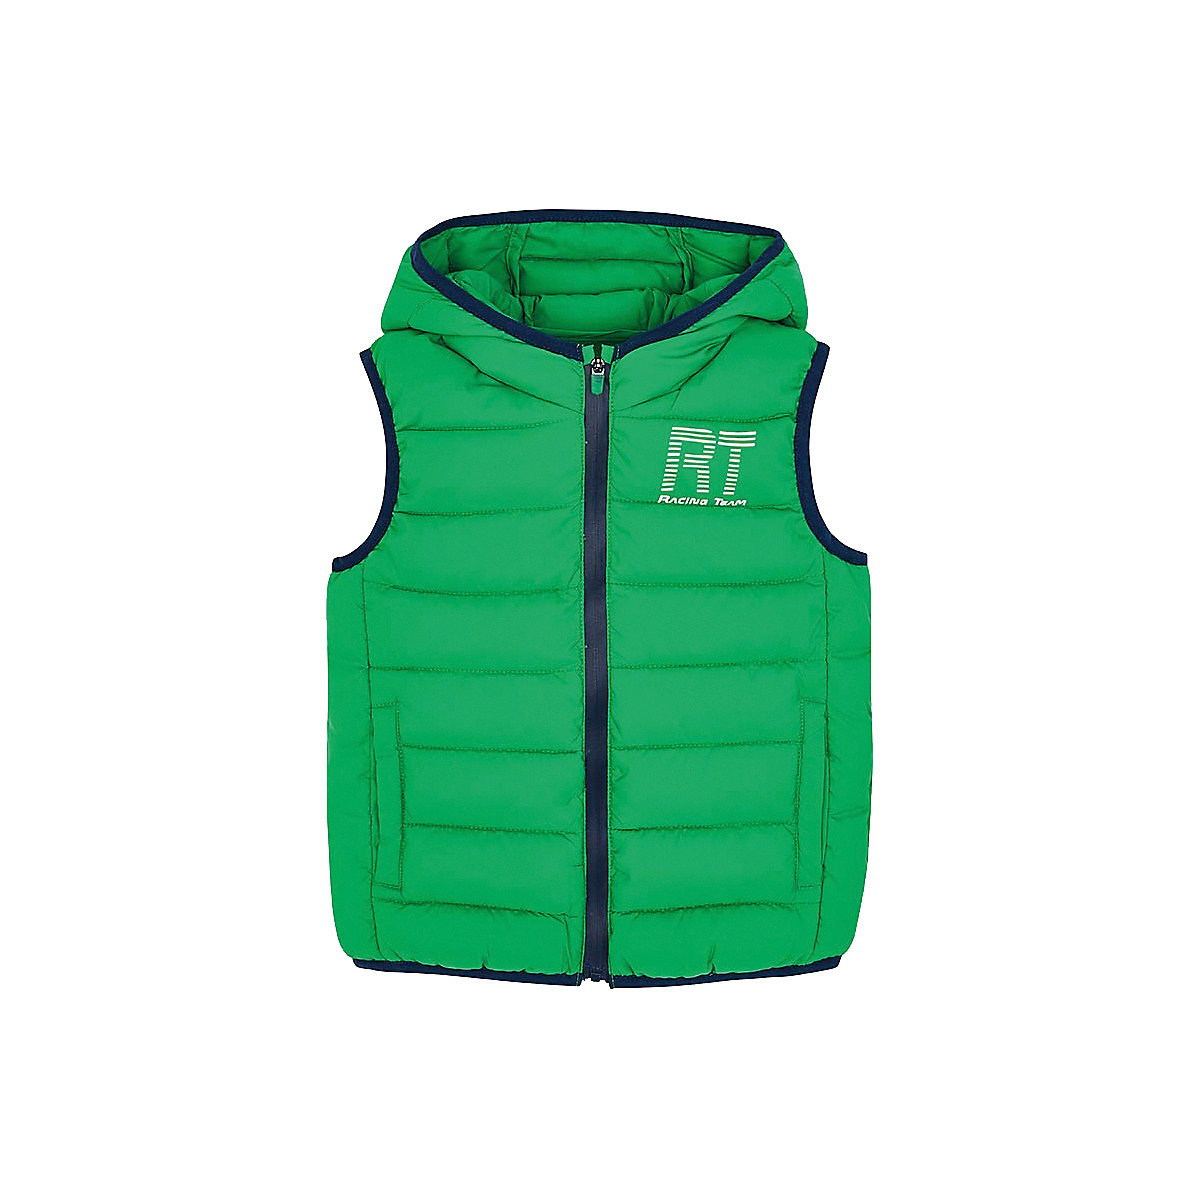 Фото - Vests & Waistcoats MAYORAL 10690323 Vest kids for boys Children s Clothing Comfortable and stylish stylish pure color and faux fur design women s crossbody bag